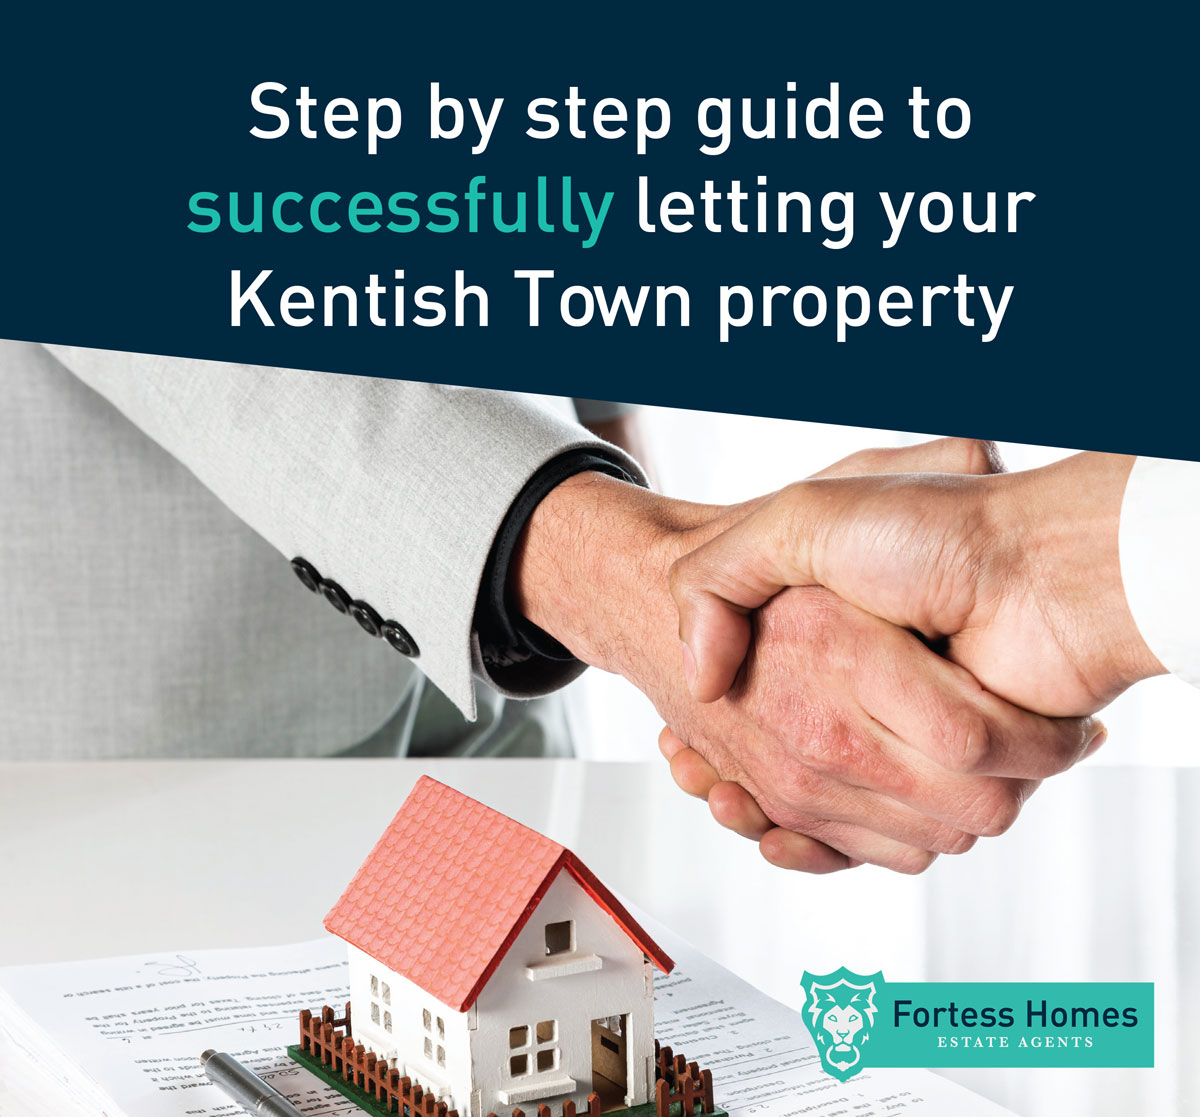 Step by step guide to successfully letting your Kentish Town property